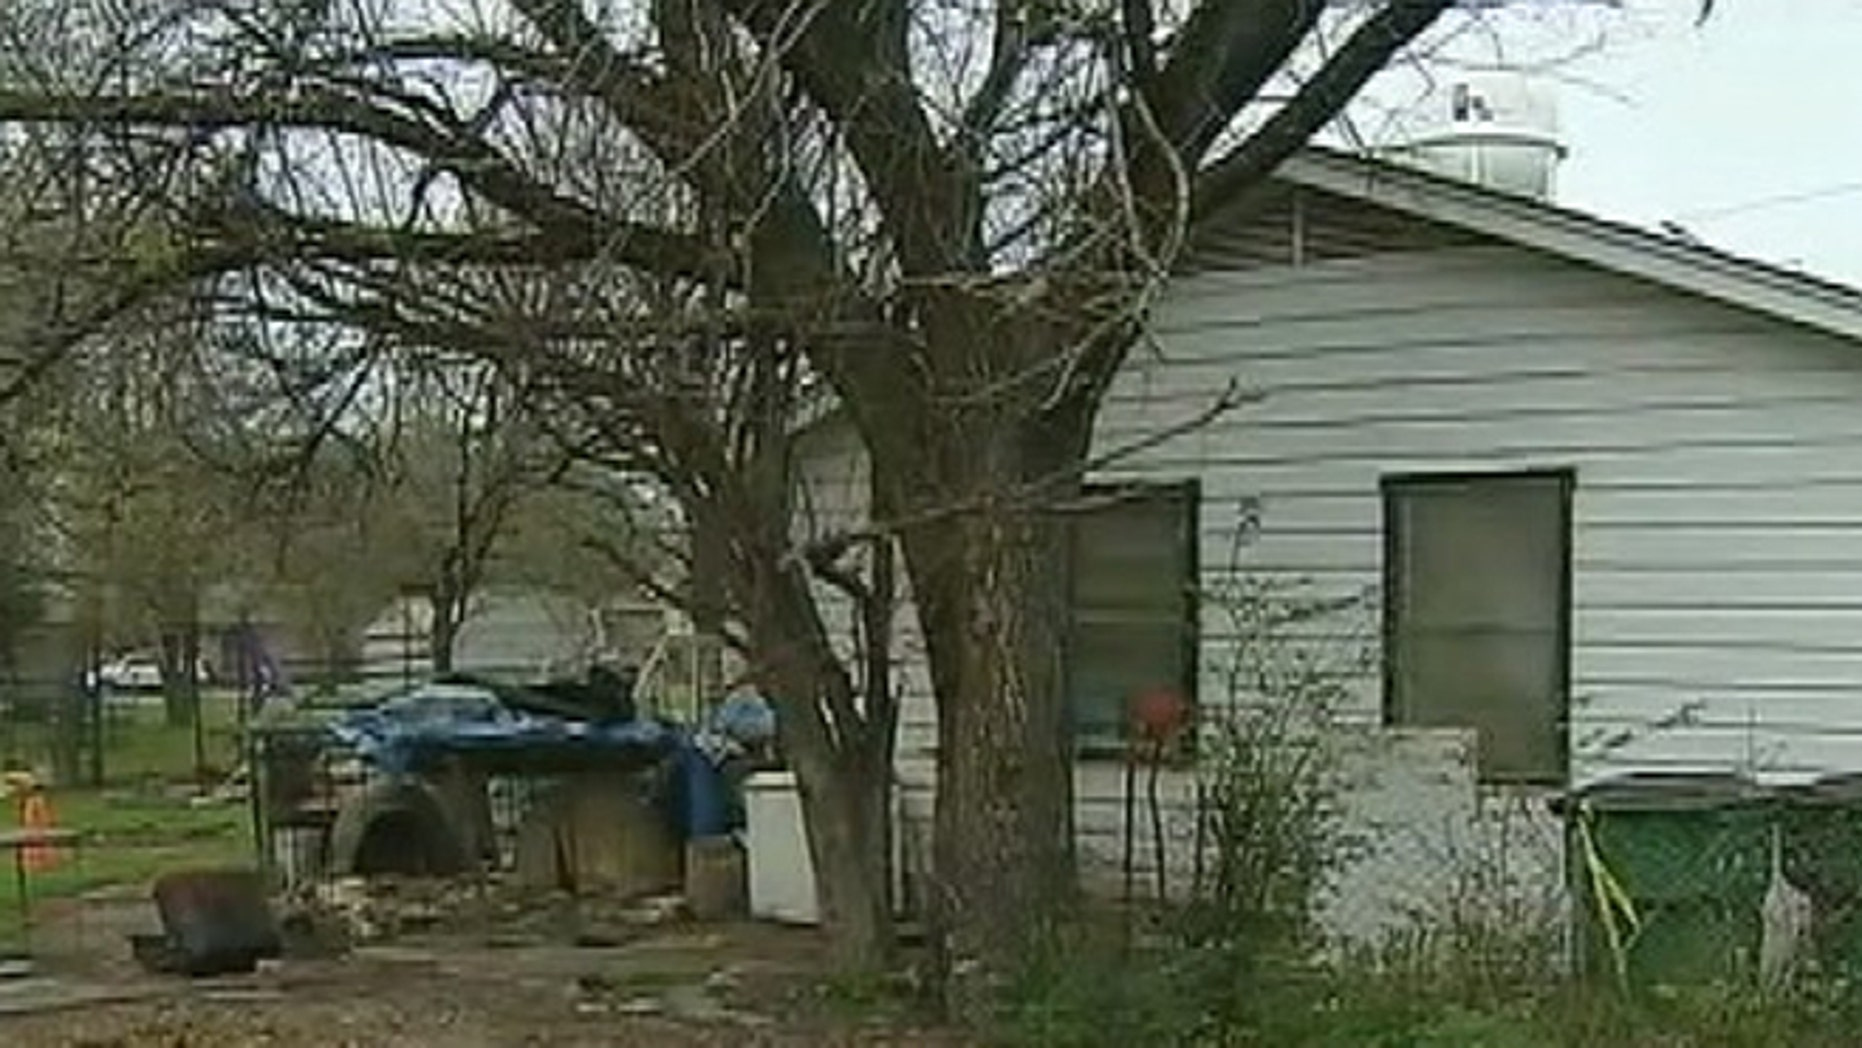 An 85-year-old woman was apparently attacked by pit bulls inside her Kaufman, Texas, home.